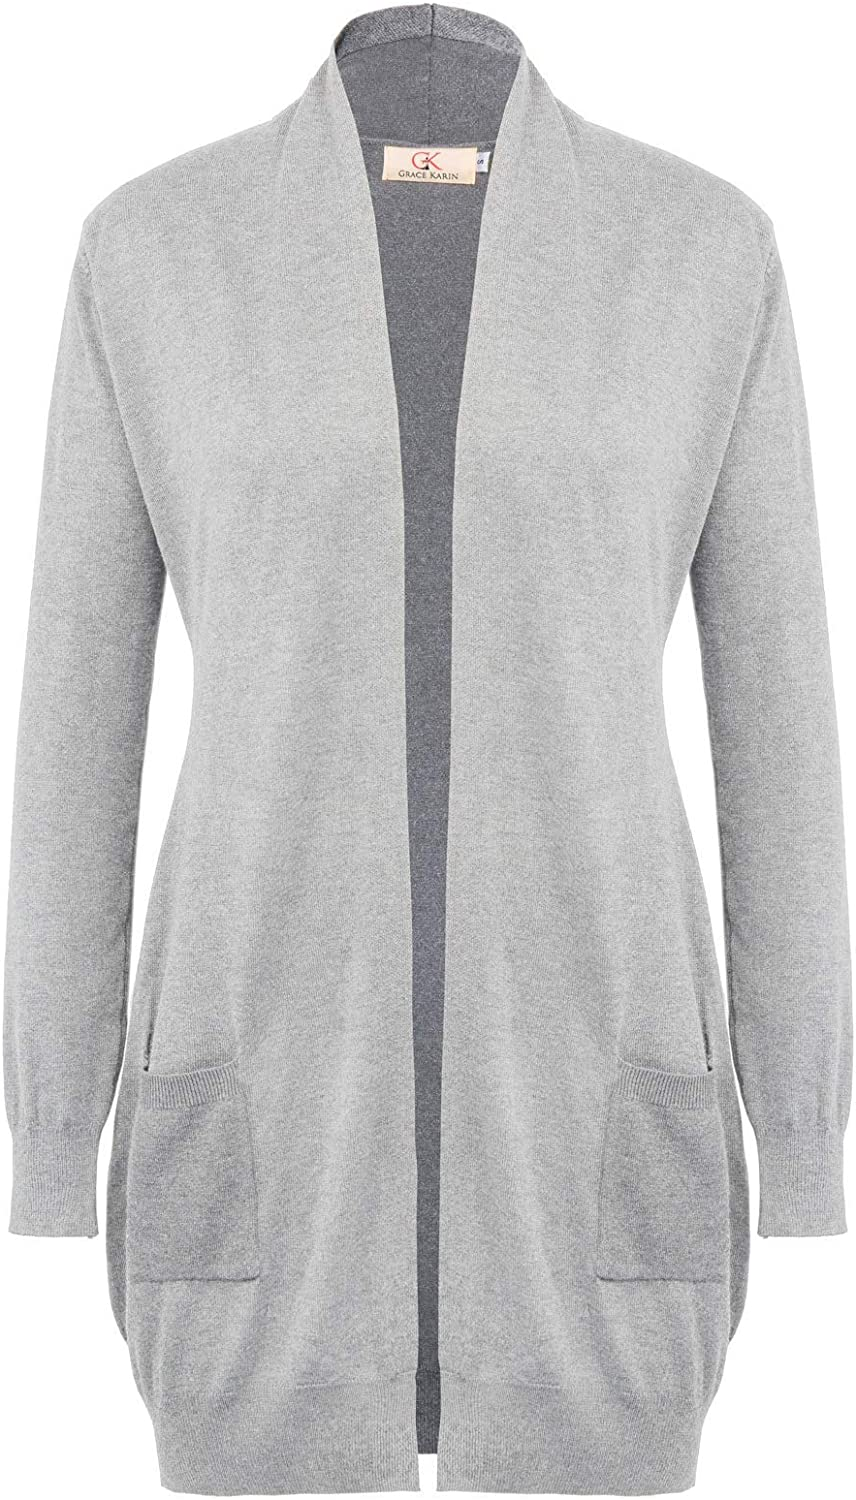 GRACE KARIN Womens Open Front Long Sleeve Cardigan Knit Sweater with Pockets